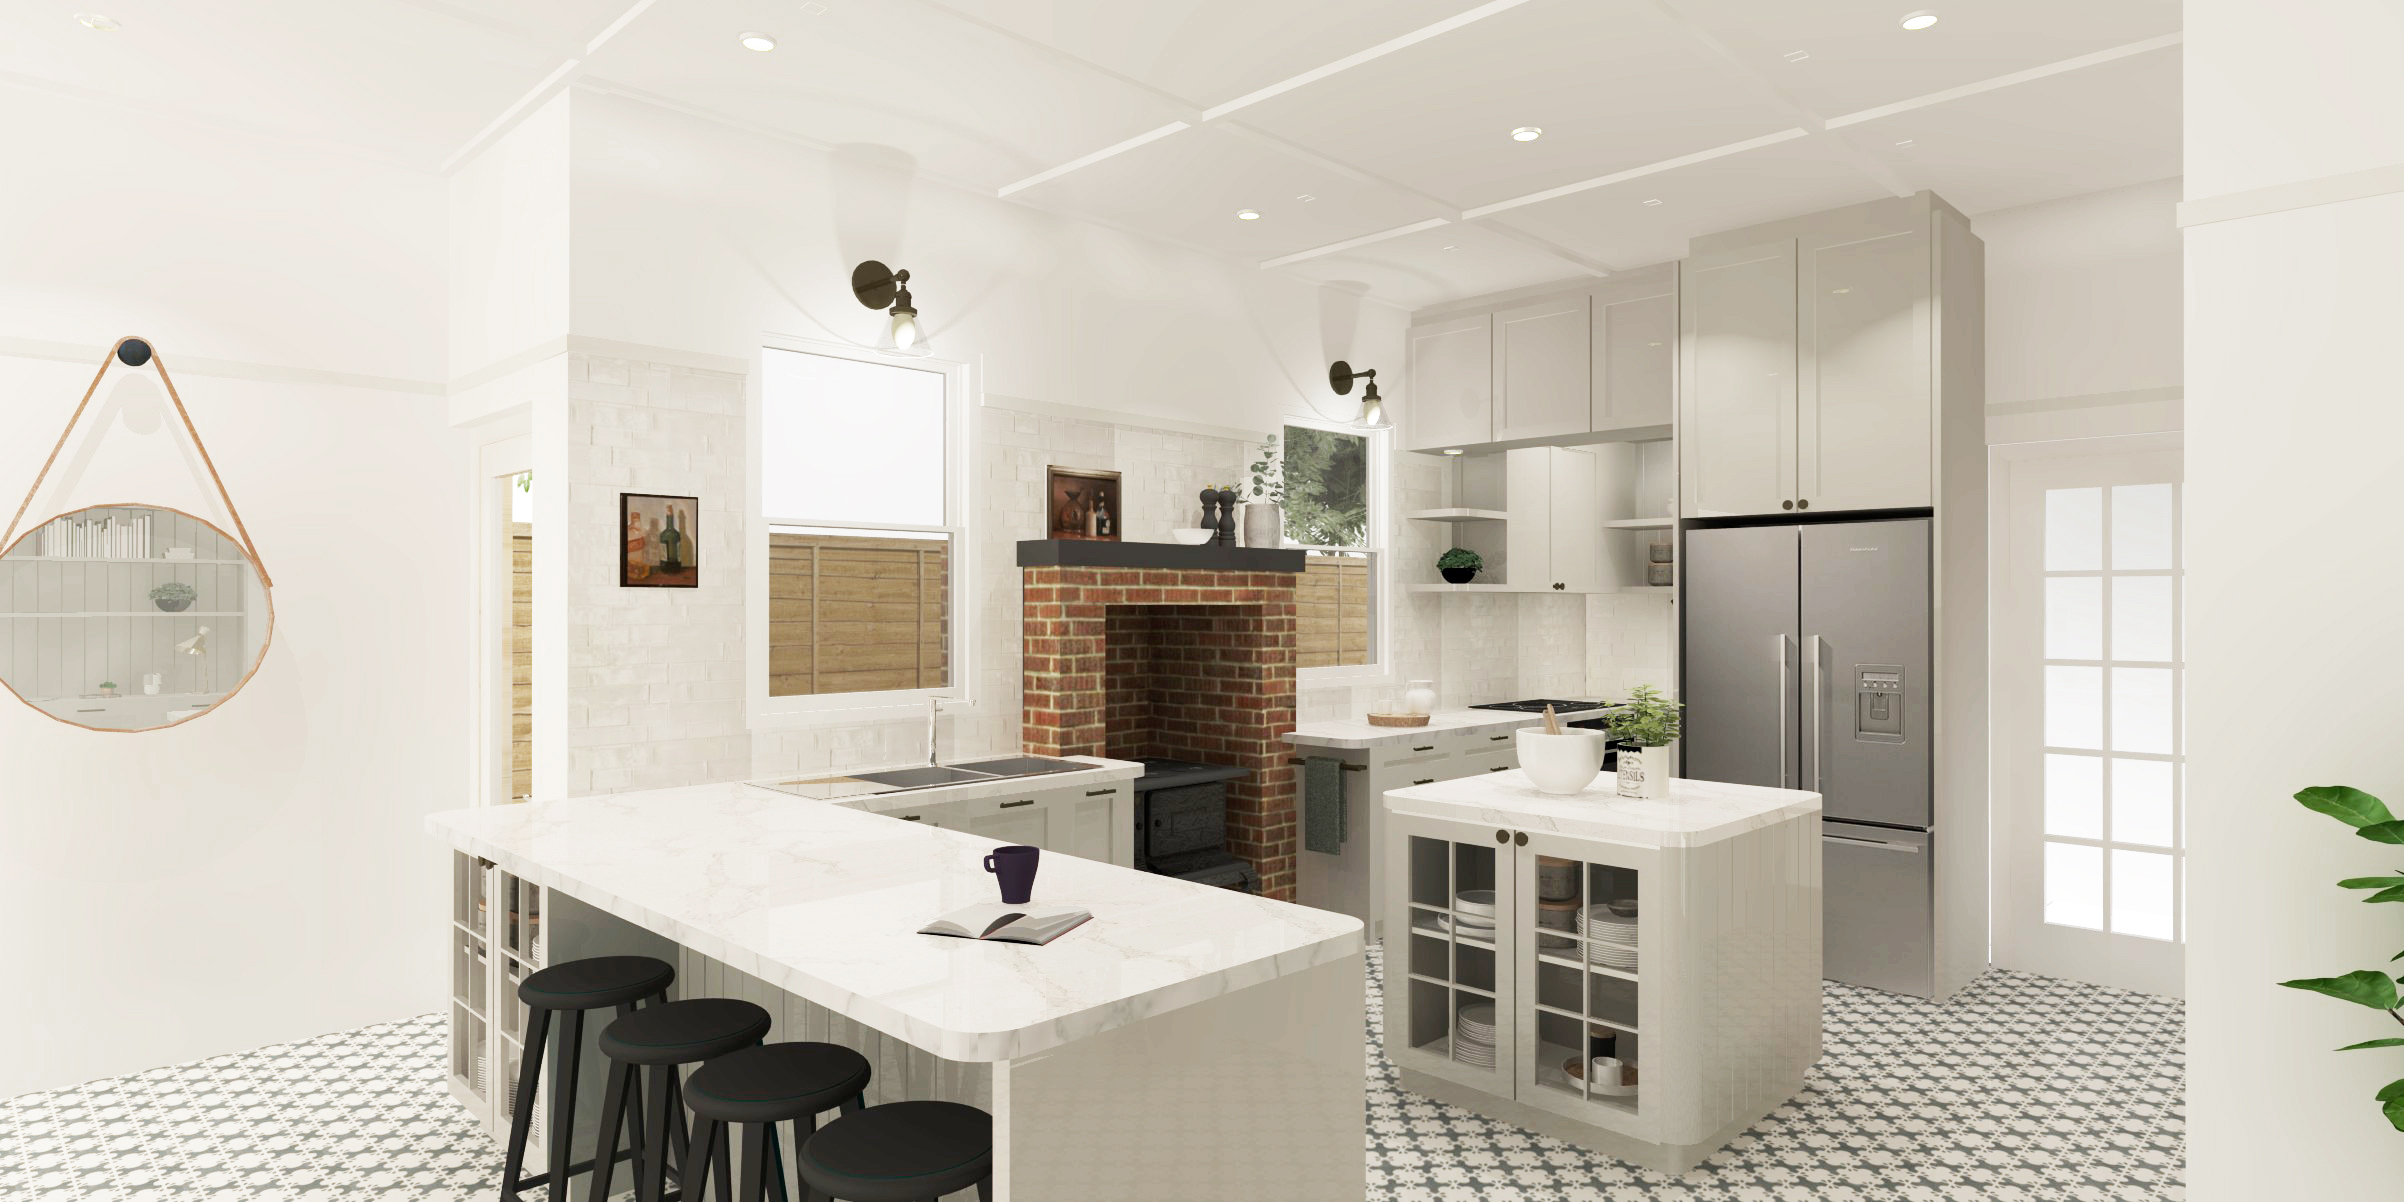 kitchen sketchup model image